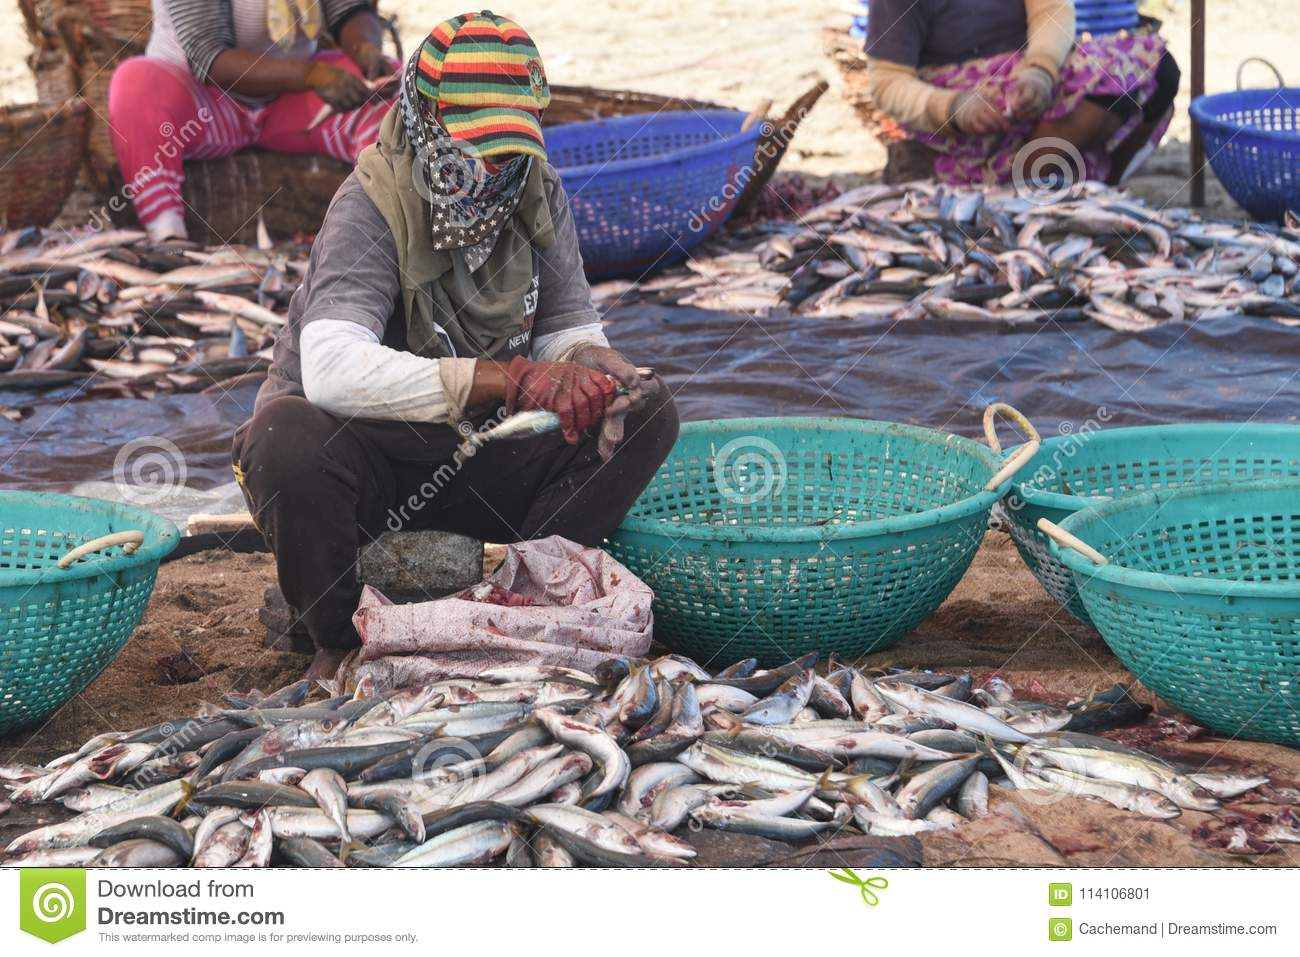 A West Indian woman cleaning flying fish at the market